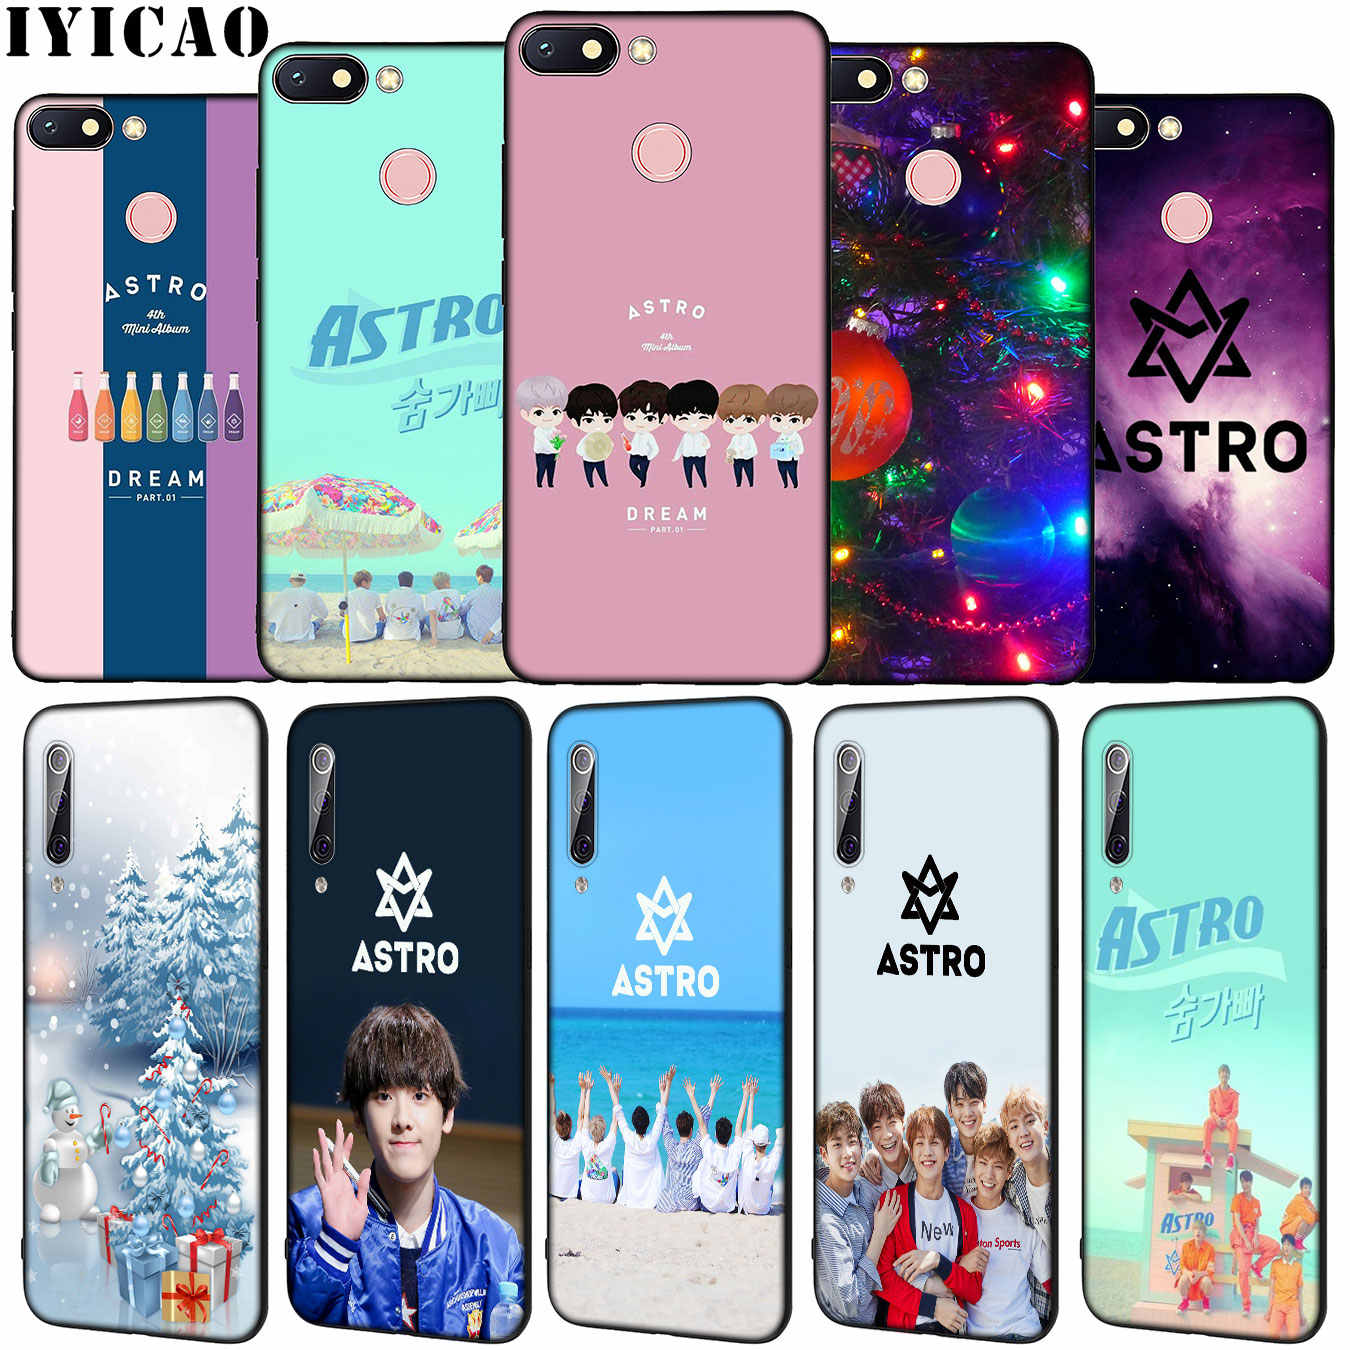 Iyicao Kpop Astro Heart Shaped Soft Silicone Phone Case For Xiaomi